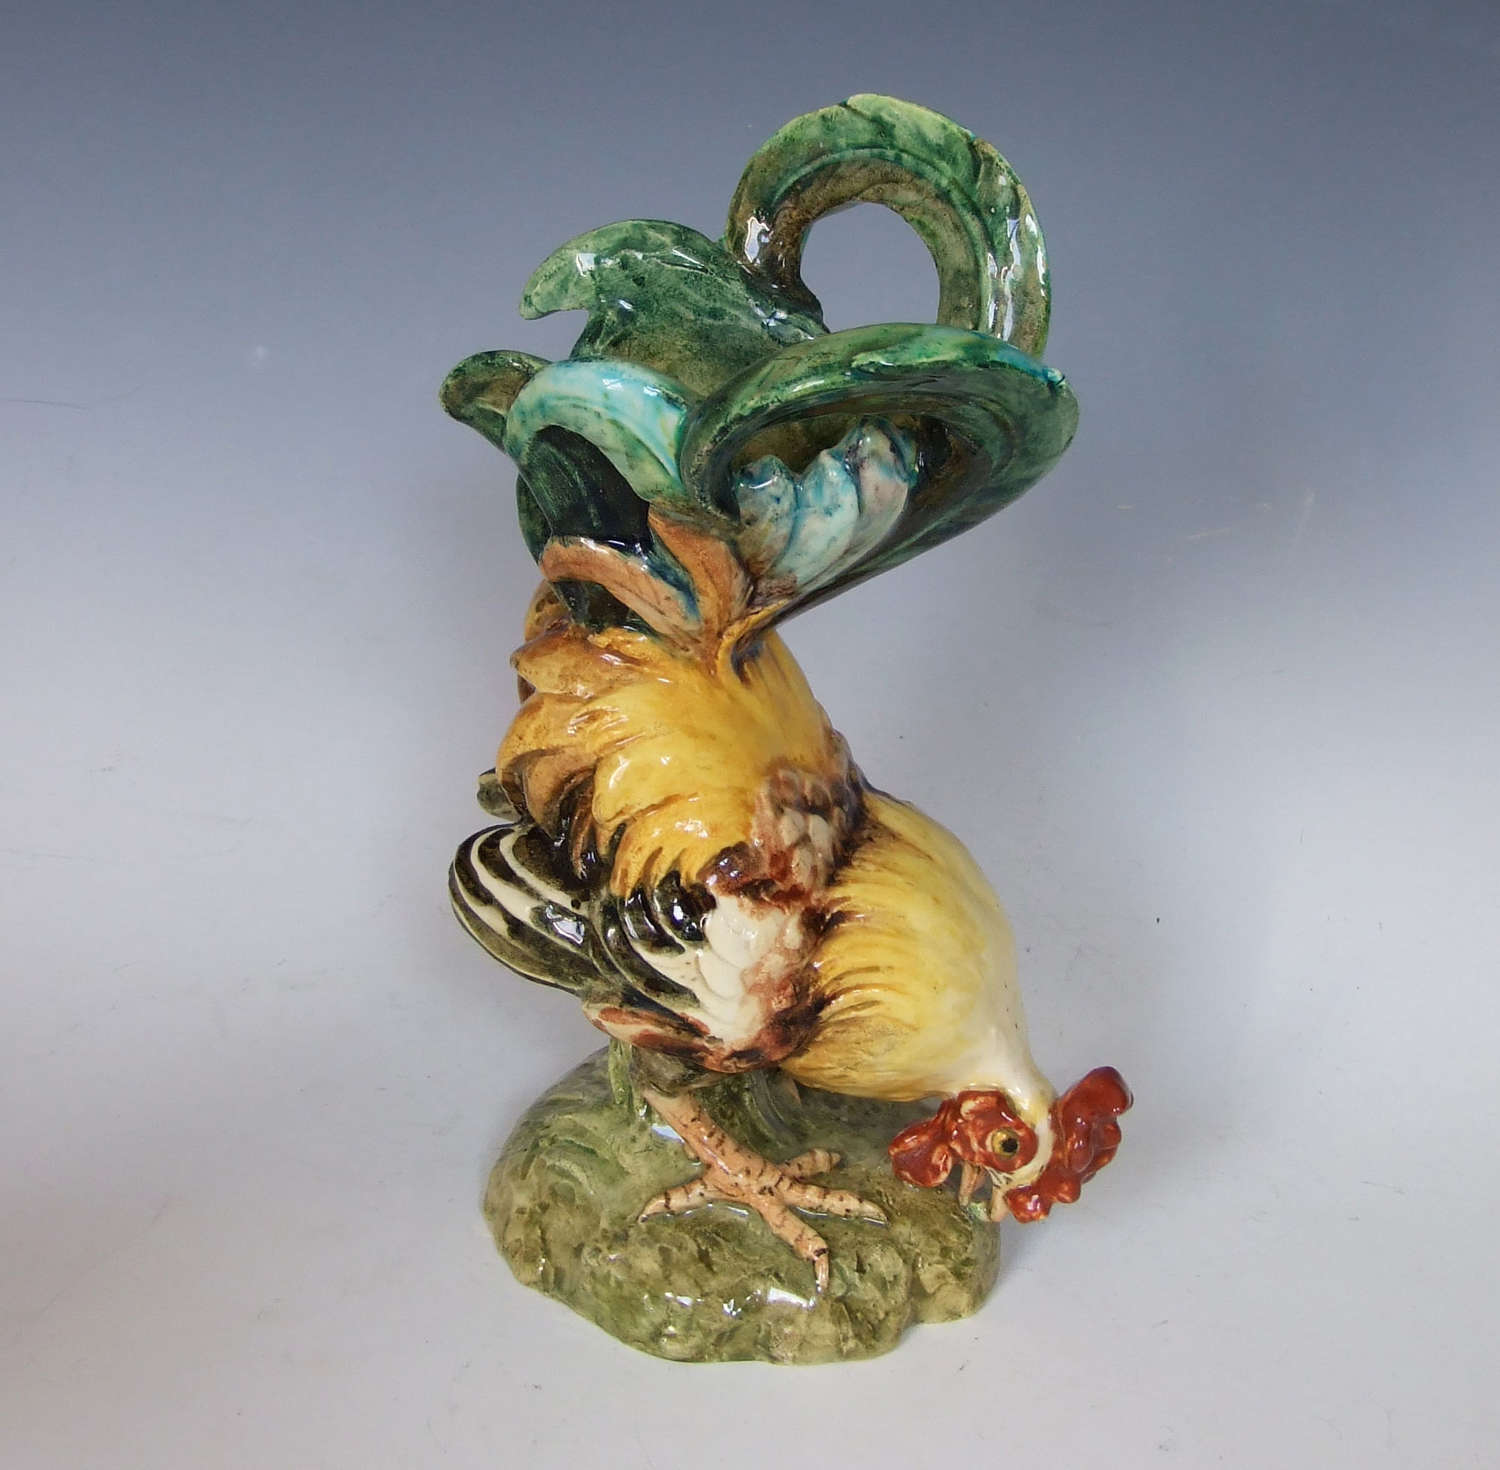 Rare majolica rooster vase by Edmond Lachenal